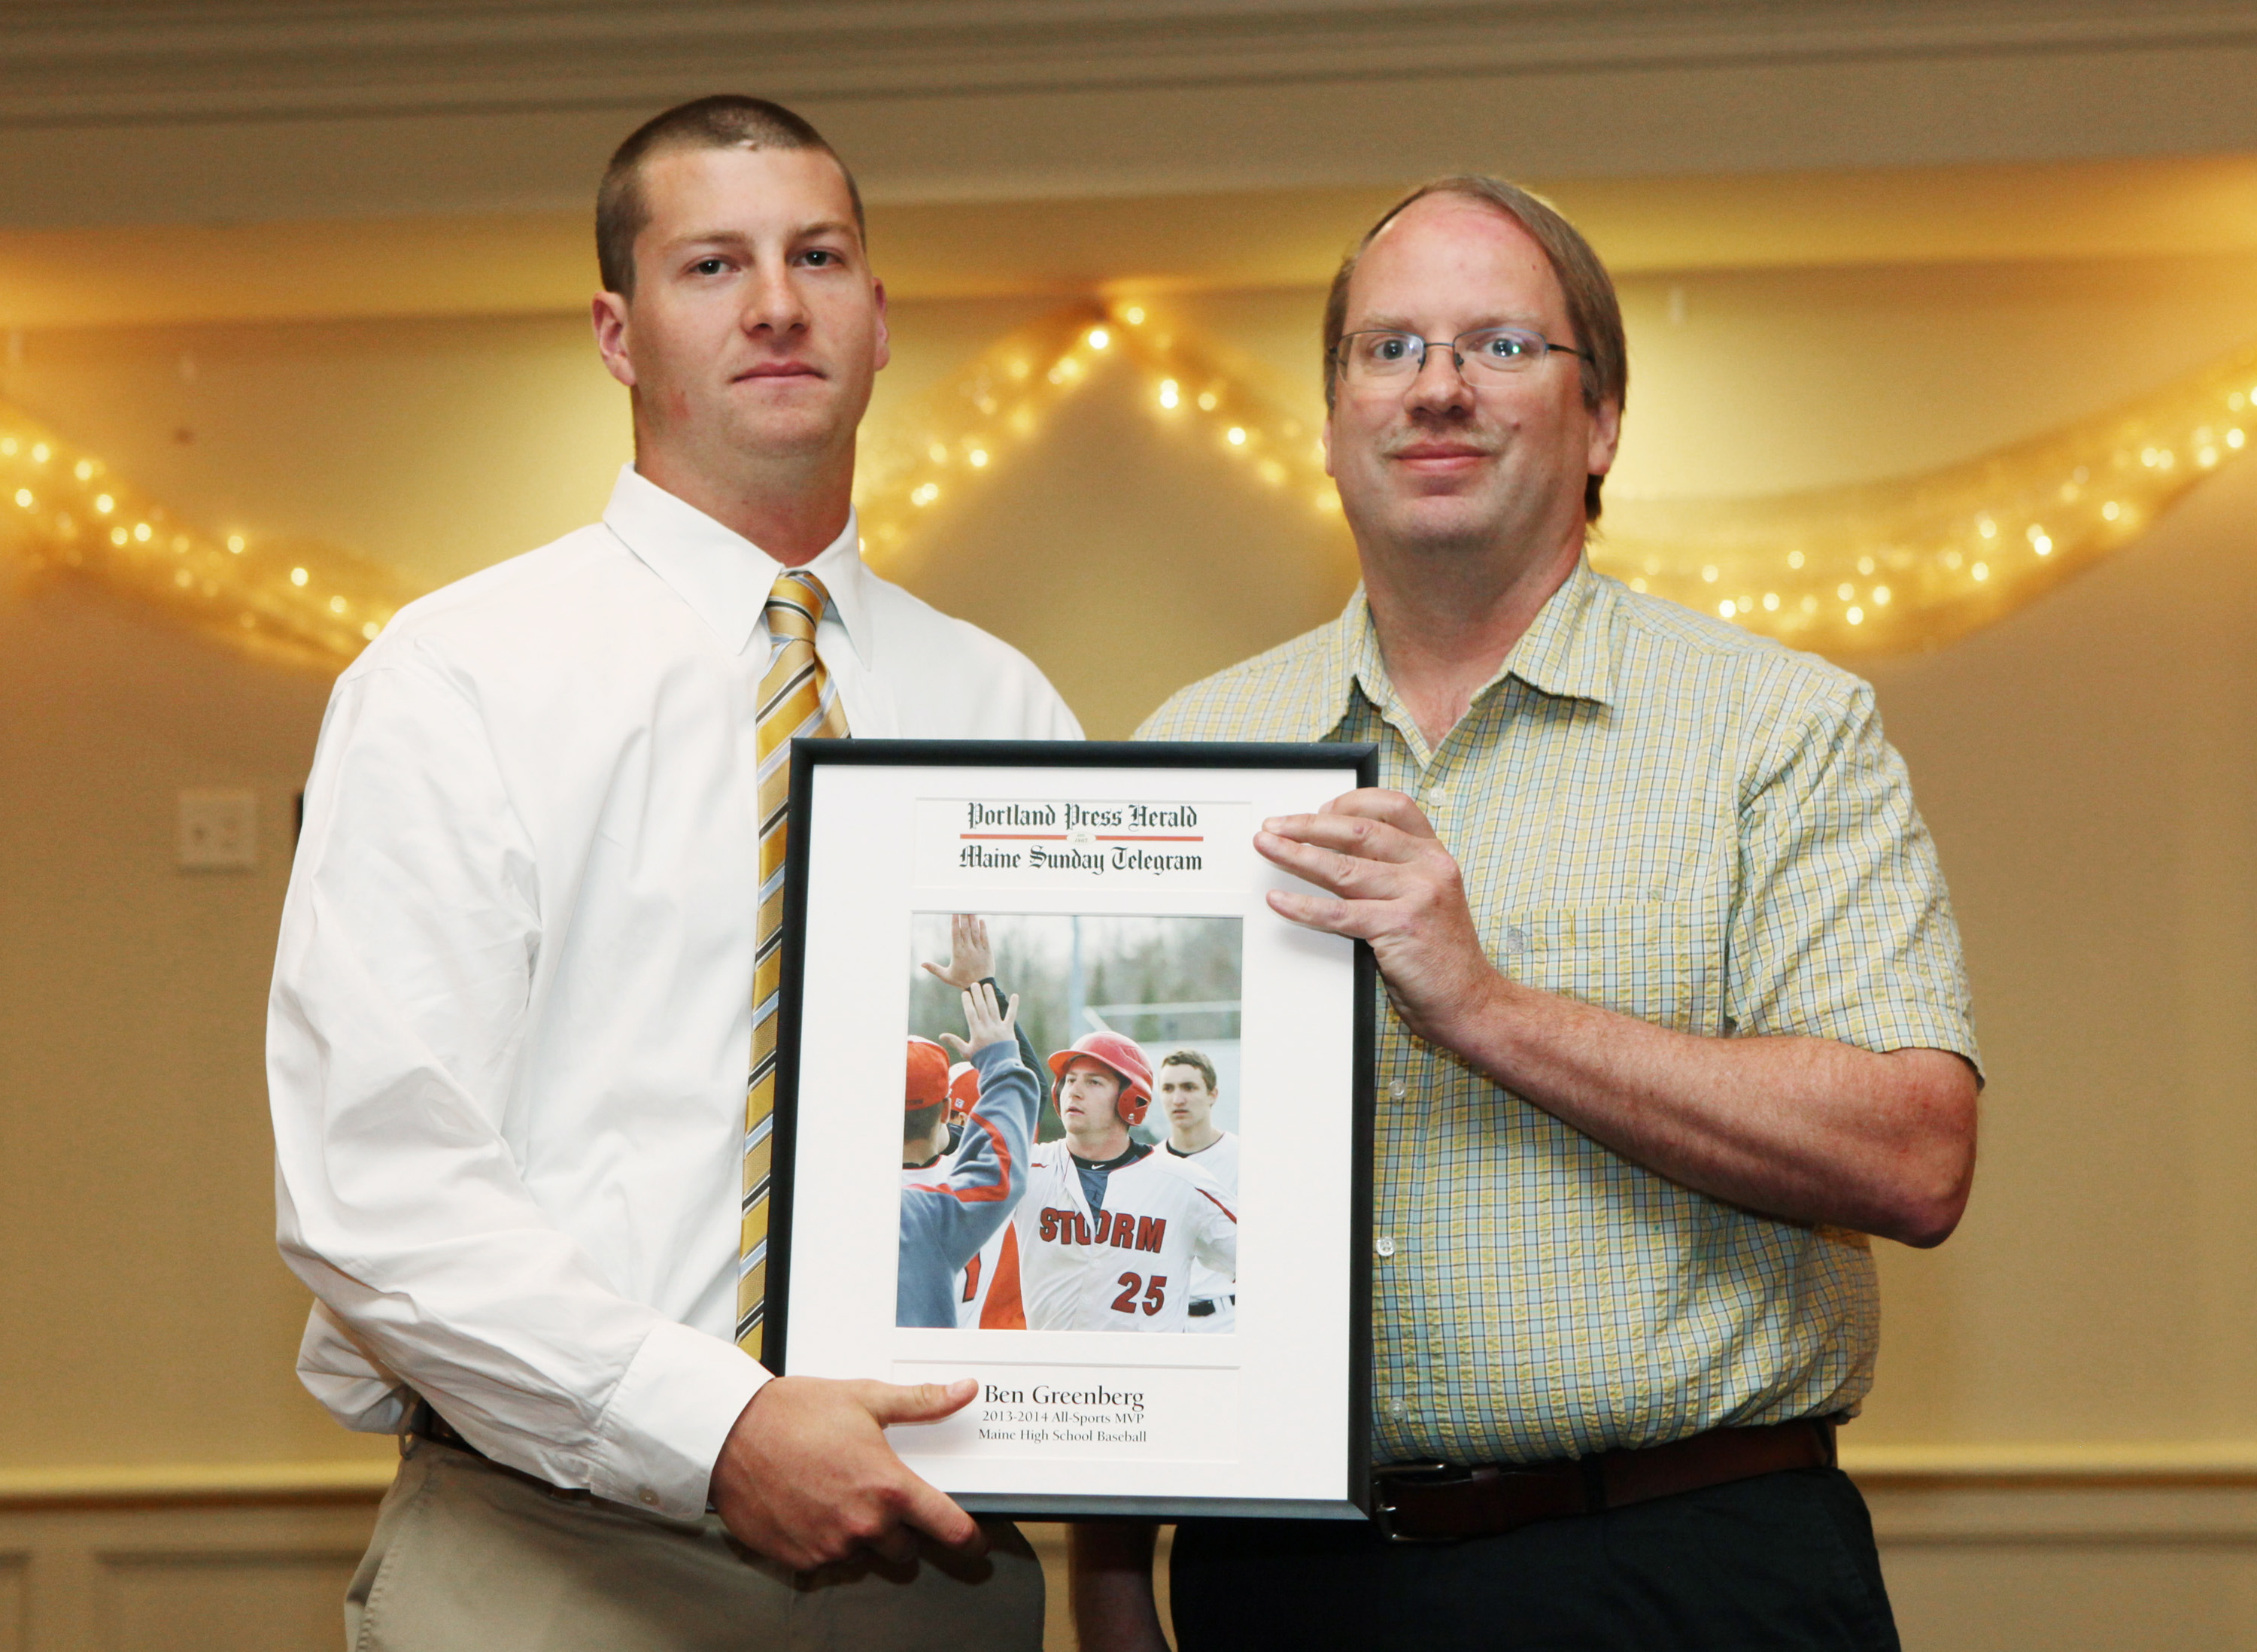 Ben Greenberg of Scarborough High School receives an award for baseball from Press Herald sports writer Mark Emmert during the 27th Annual All-Sports Awards Sunday. Joel Page/Staff Photographer